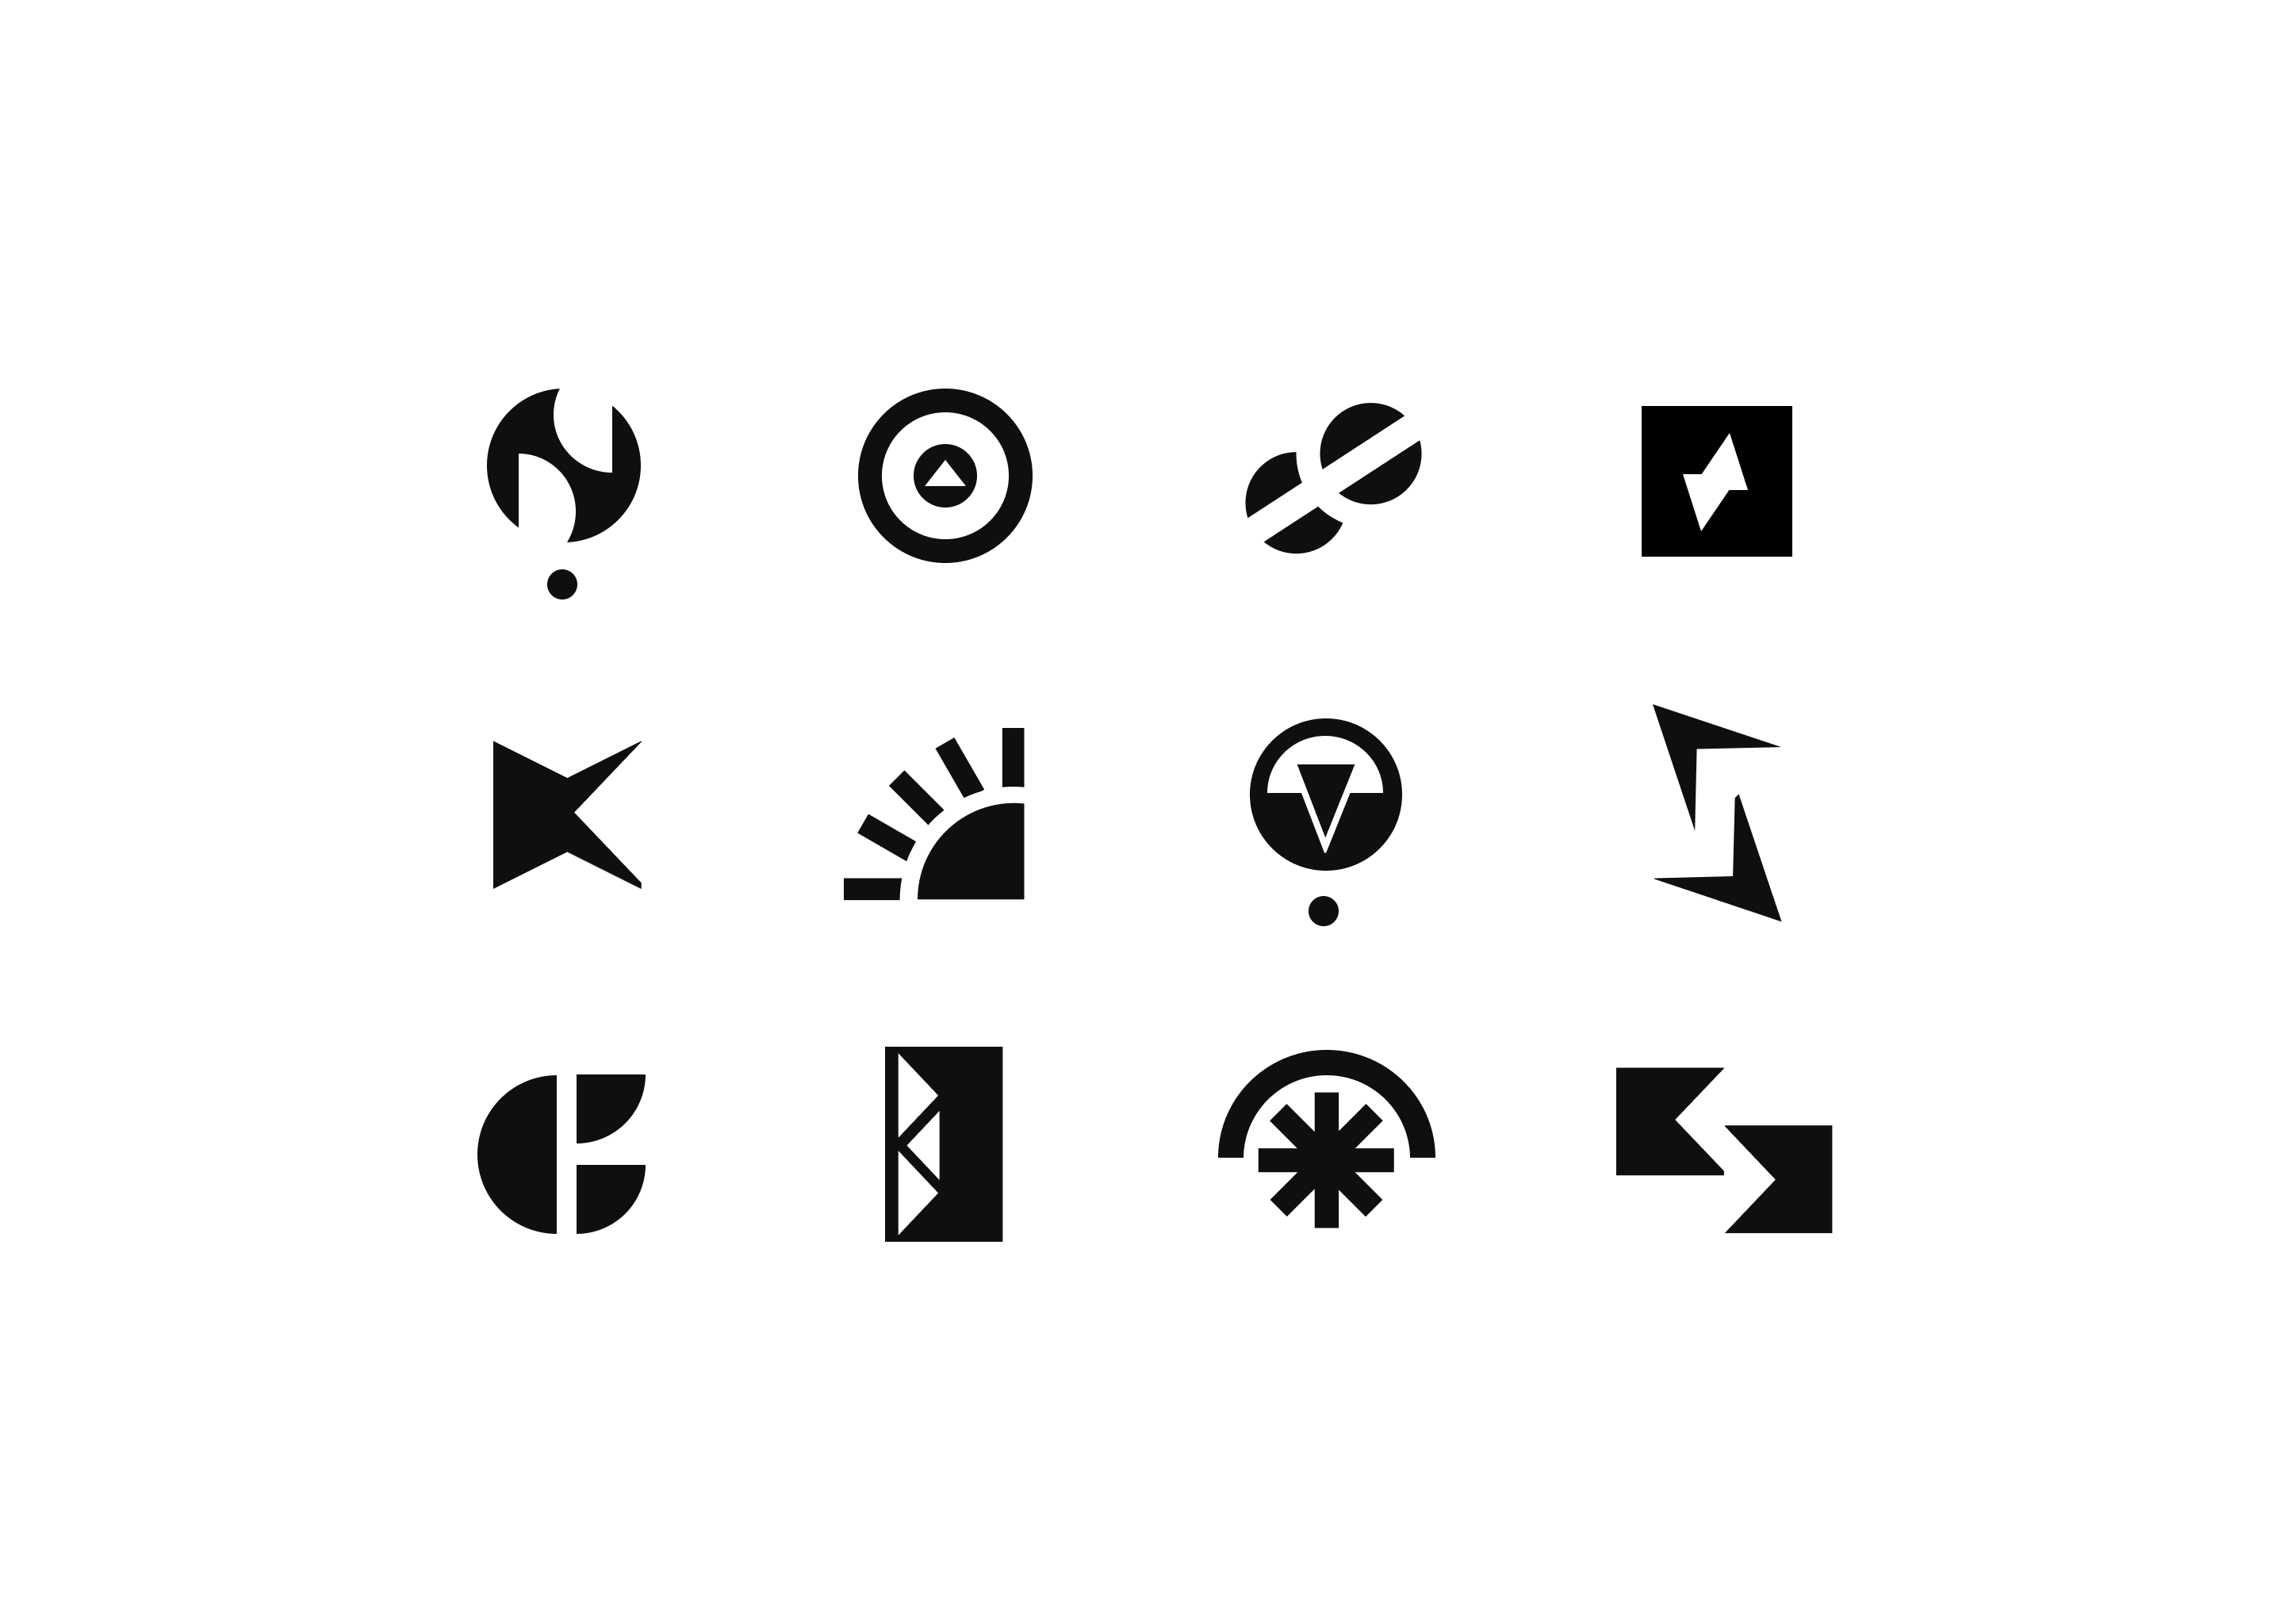 Initial spark logo concepts